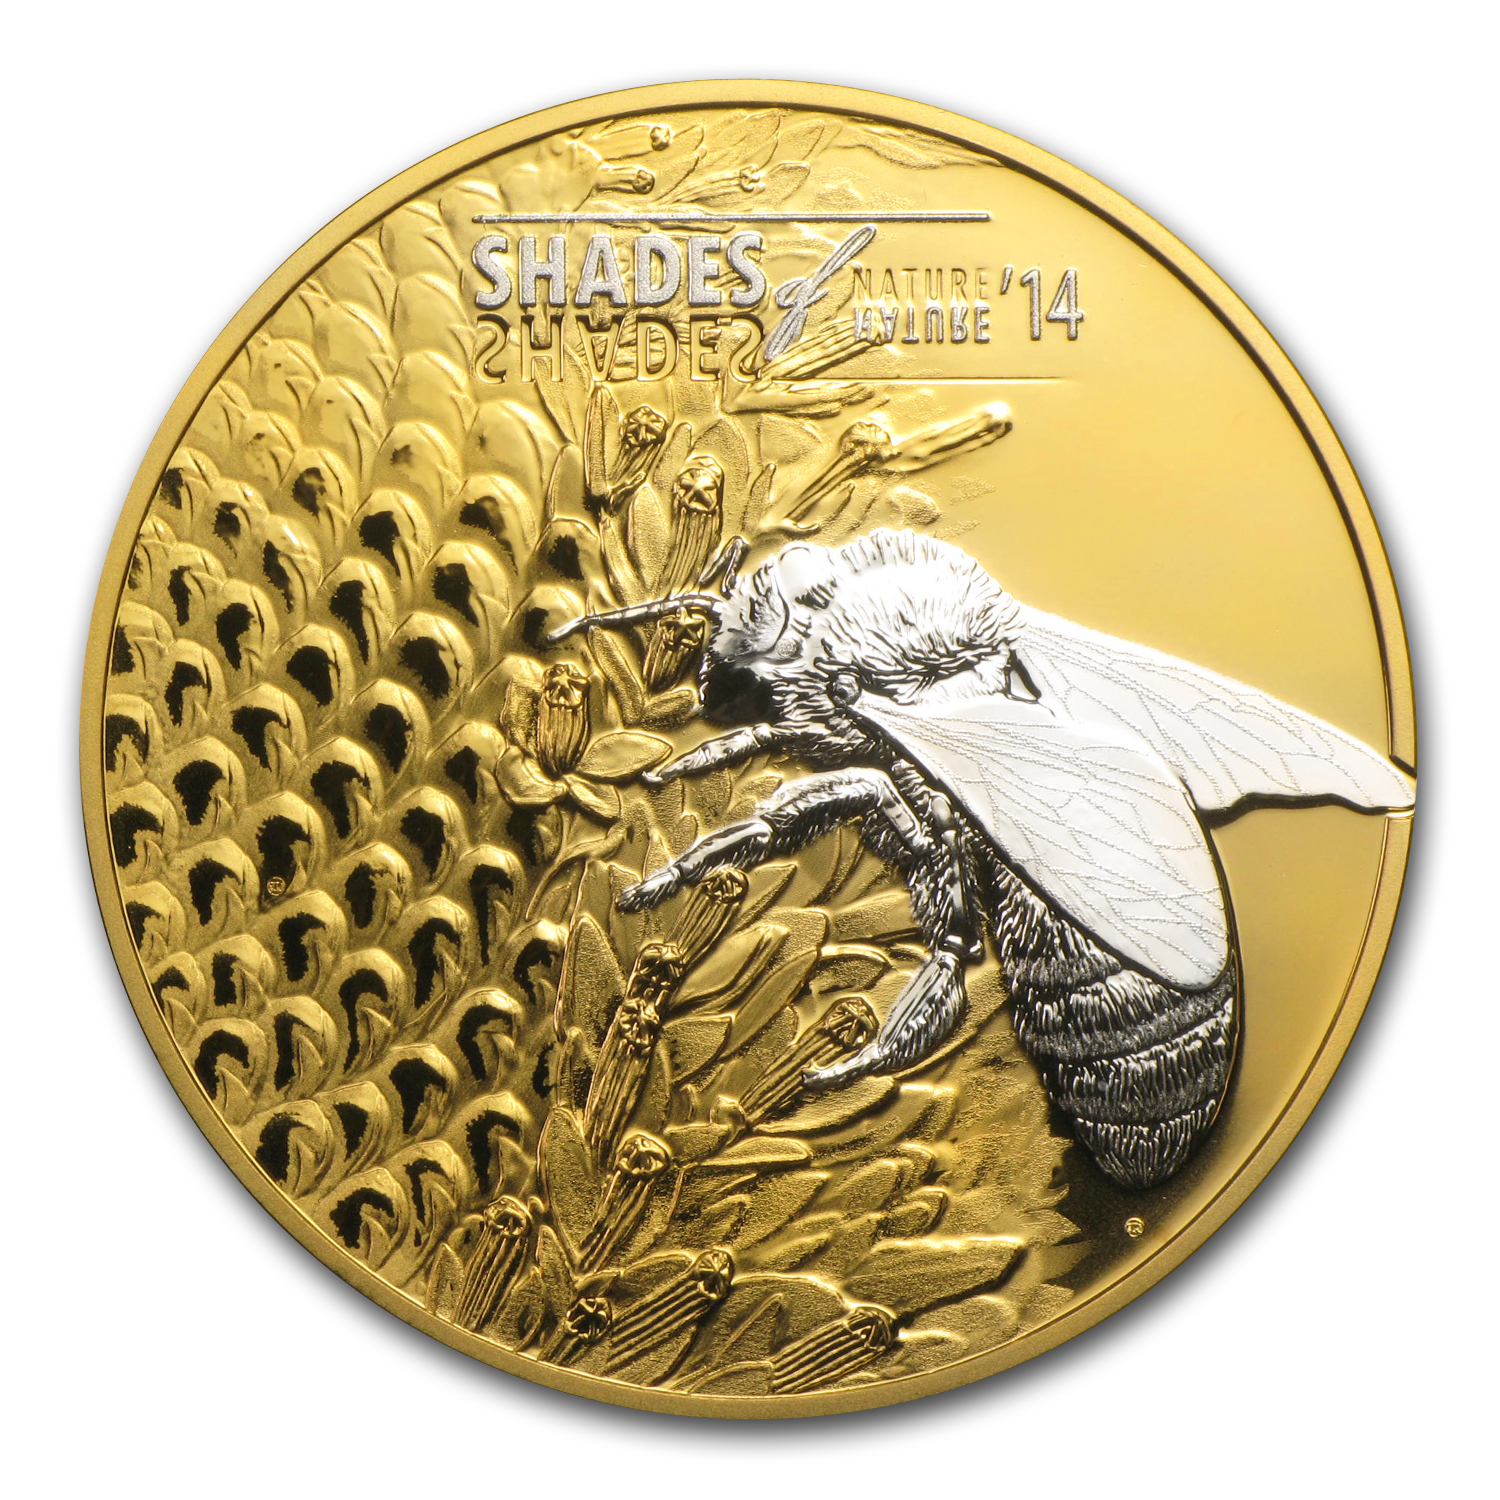 2014 Cook Islands Proof Silver $5 Shades of Nature Bee